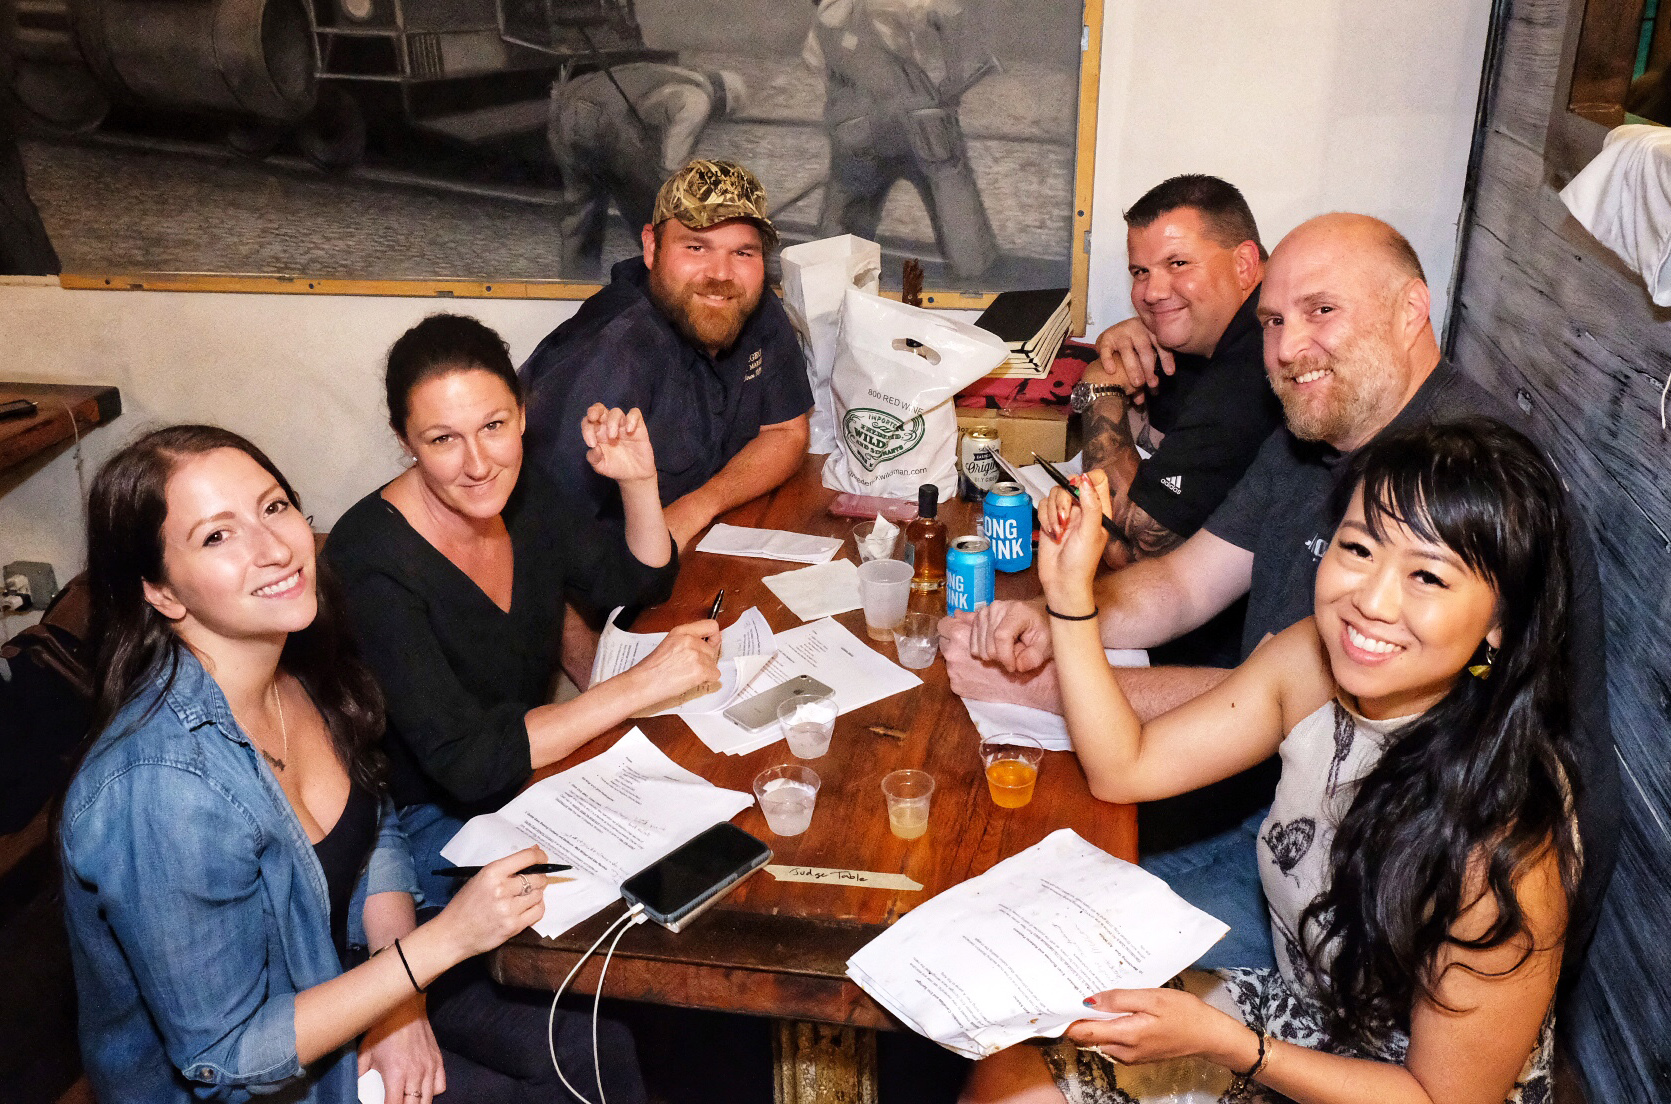 The judges at Rib King NYC 2019 deliberated fiercely at the event to determine the winner.